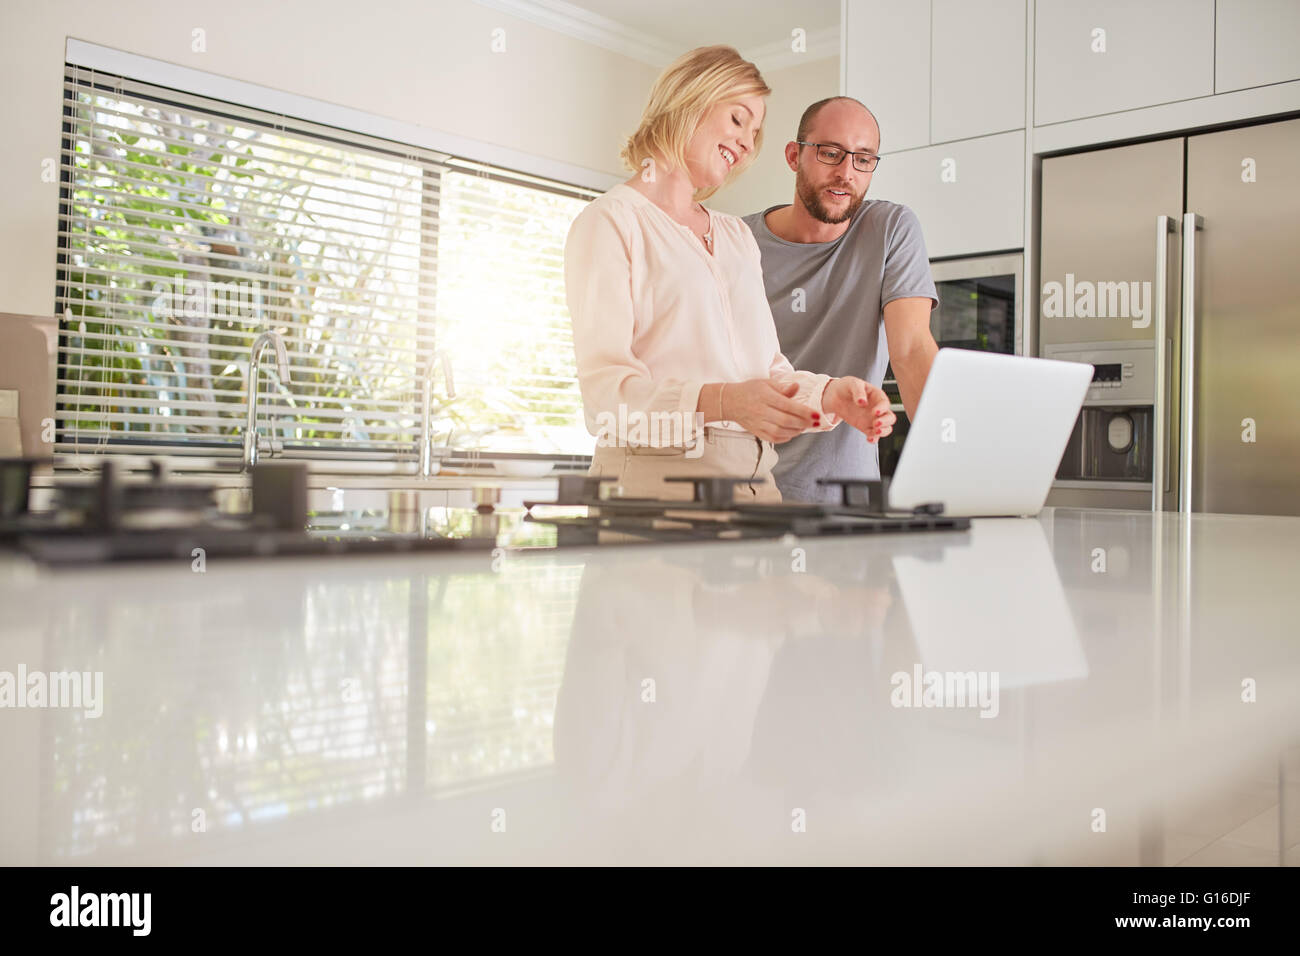 Indoor shot of a happy couple using laptop computer in the kitchen. Woman showing something on laptop to man. Stock Photo